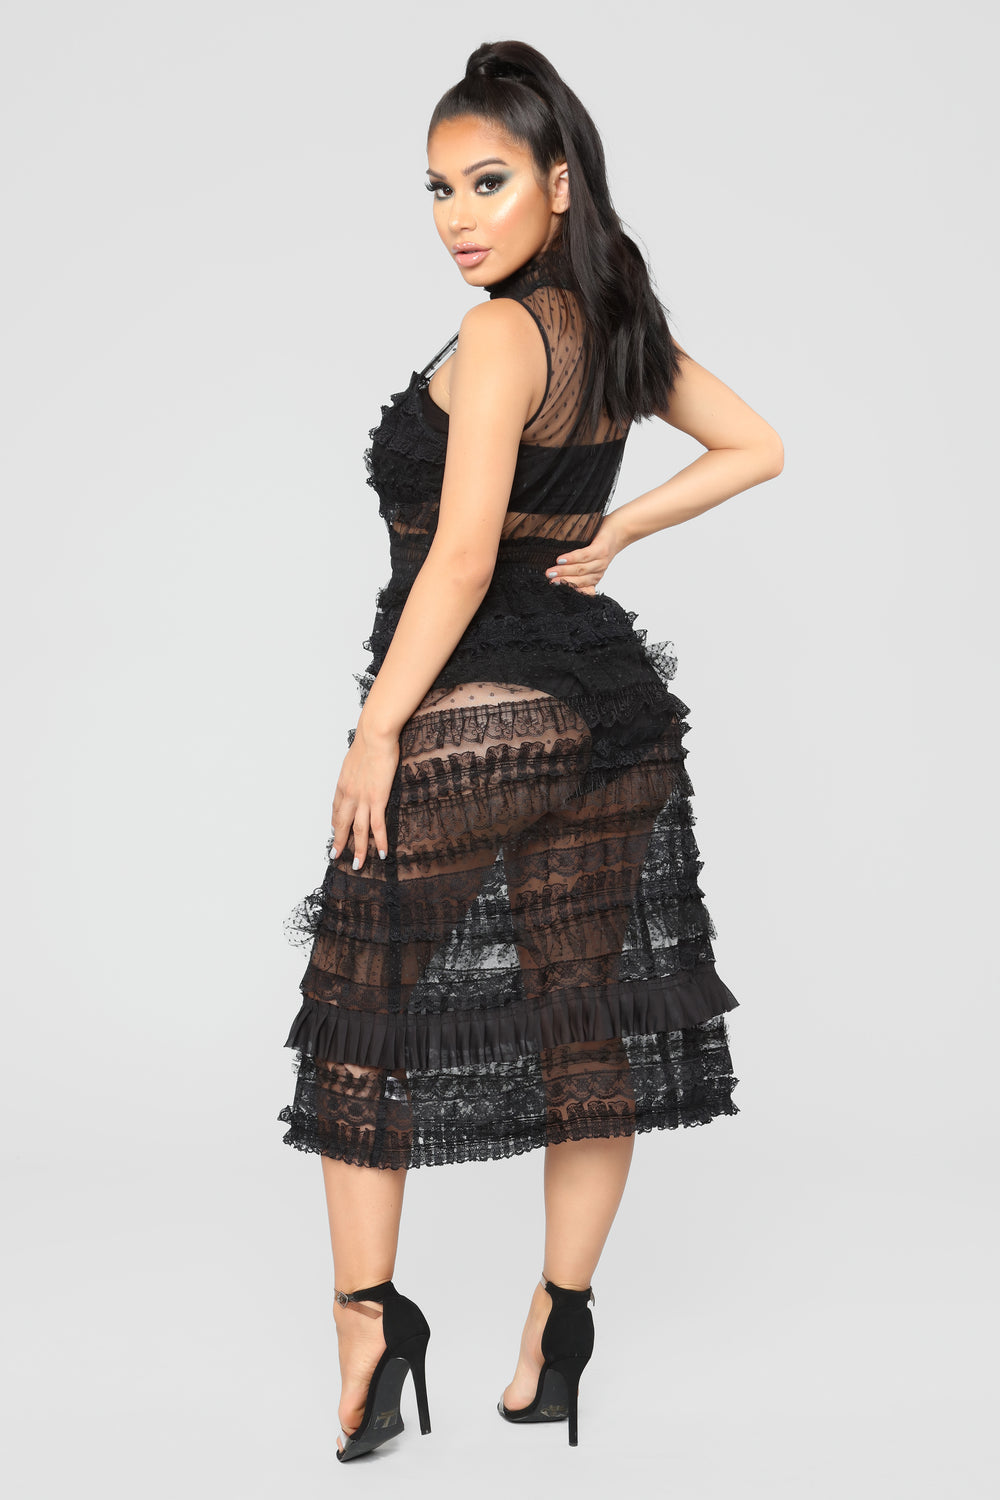 Do You Dirty Ruffle Dress - Black